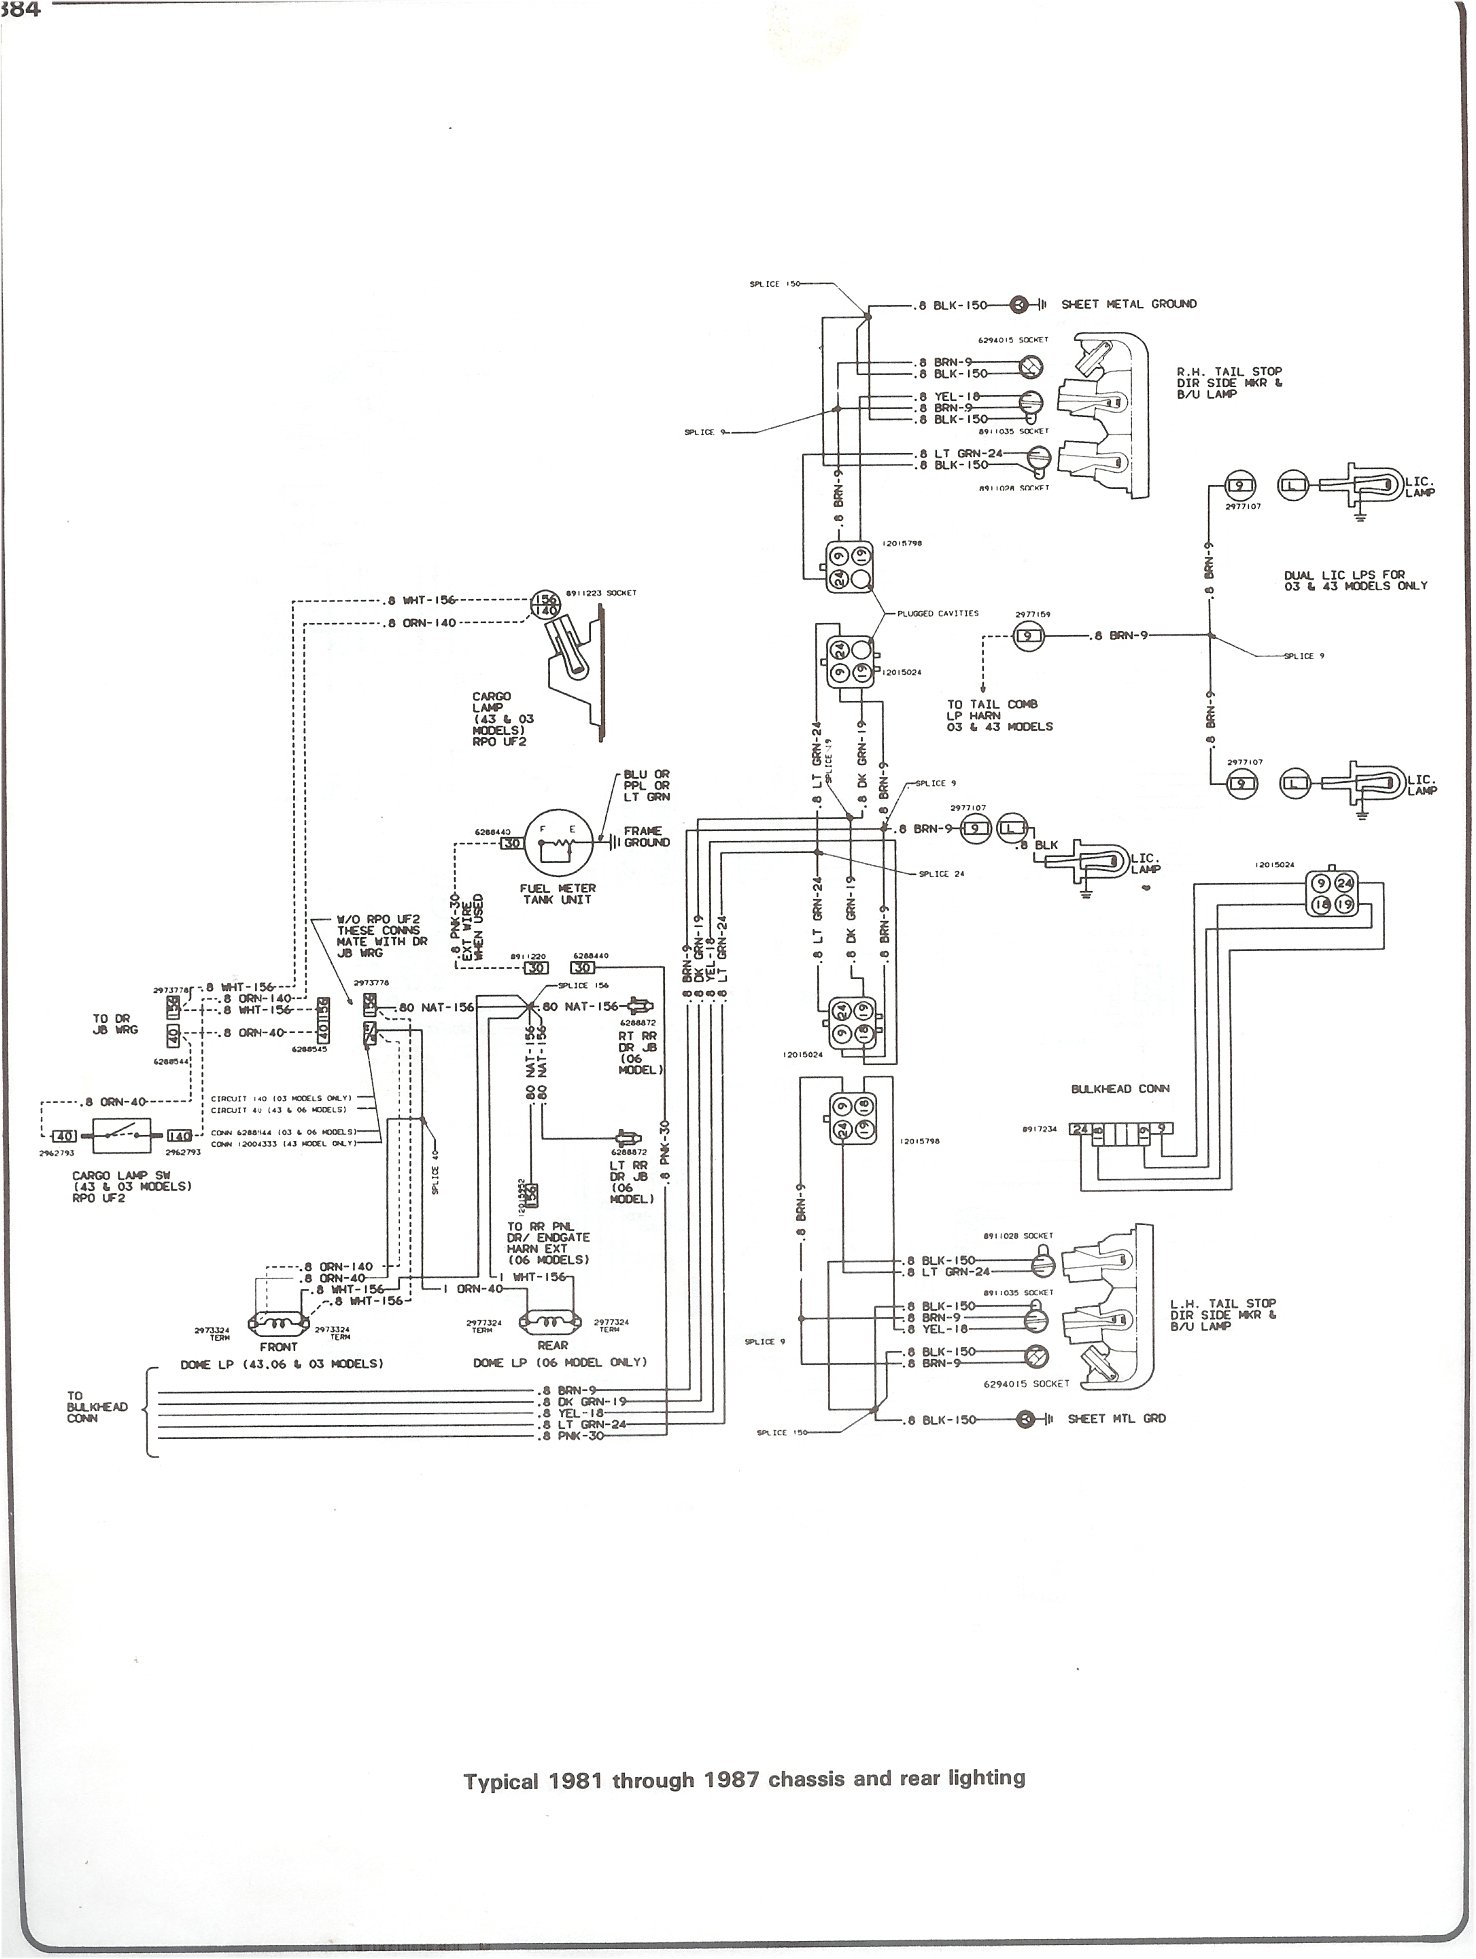 81 87_chass_rr_light complete 73 87 wiring diagrams Chevy Wiring Harness Diagram at panicattacktreatment.co